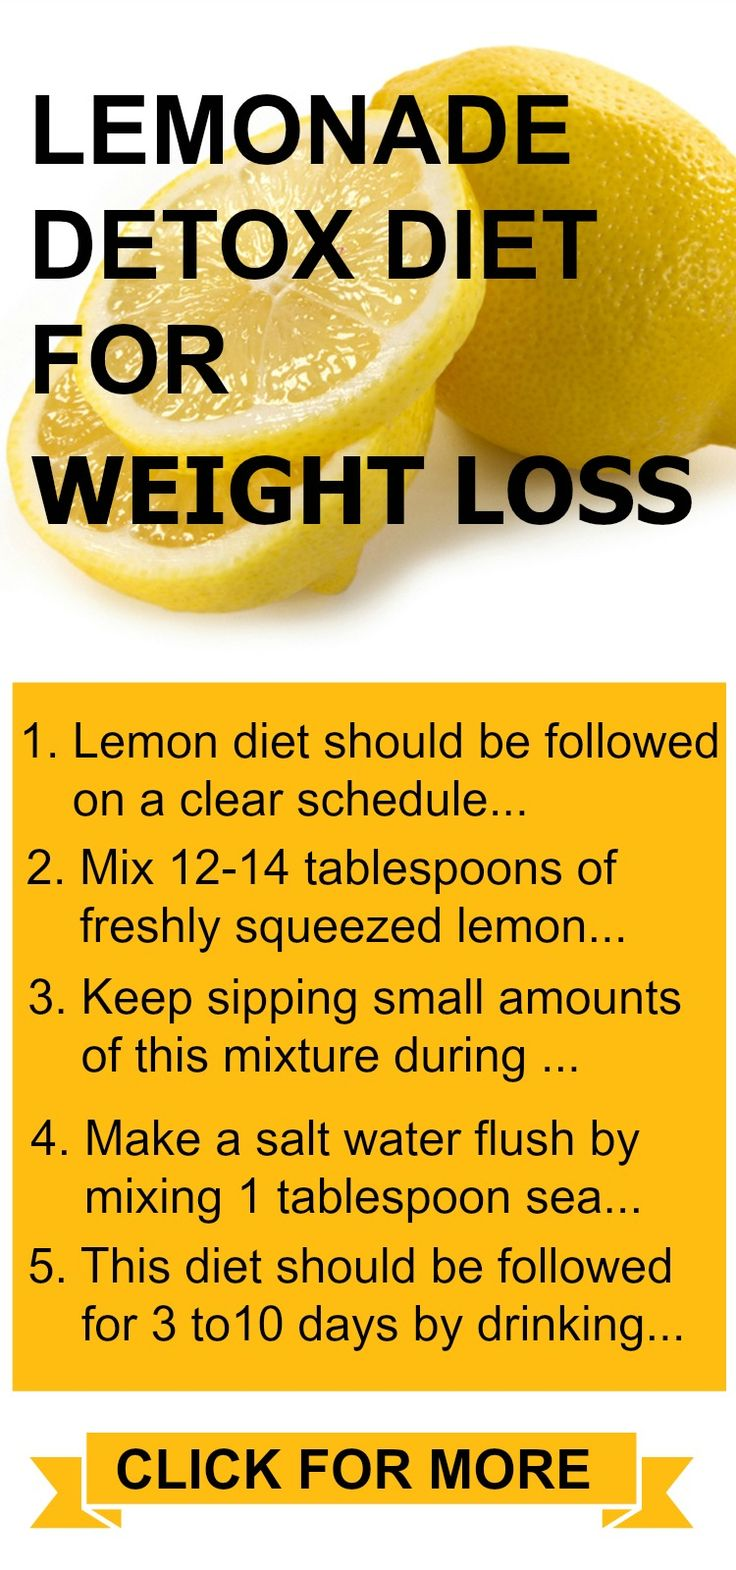 The Lemonade Diet, also known as the master cleanse, is a diet resulting in rapid weight loss over a period of several days to